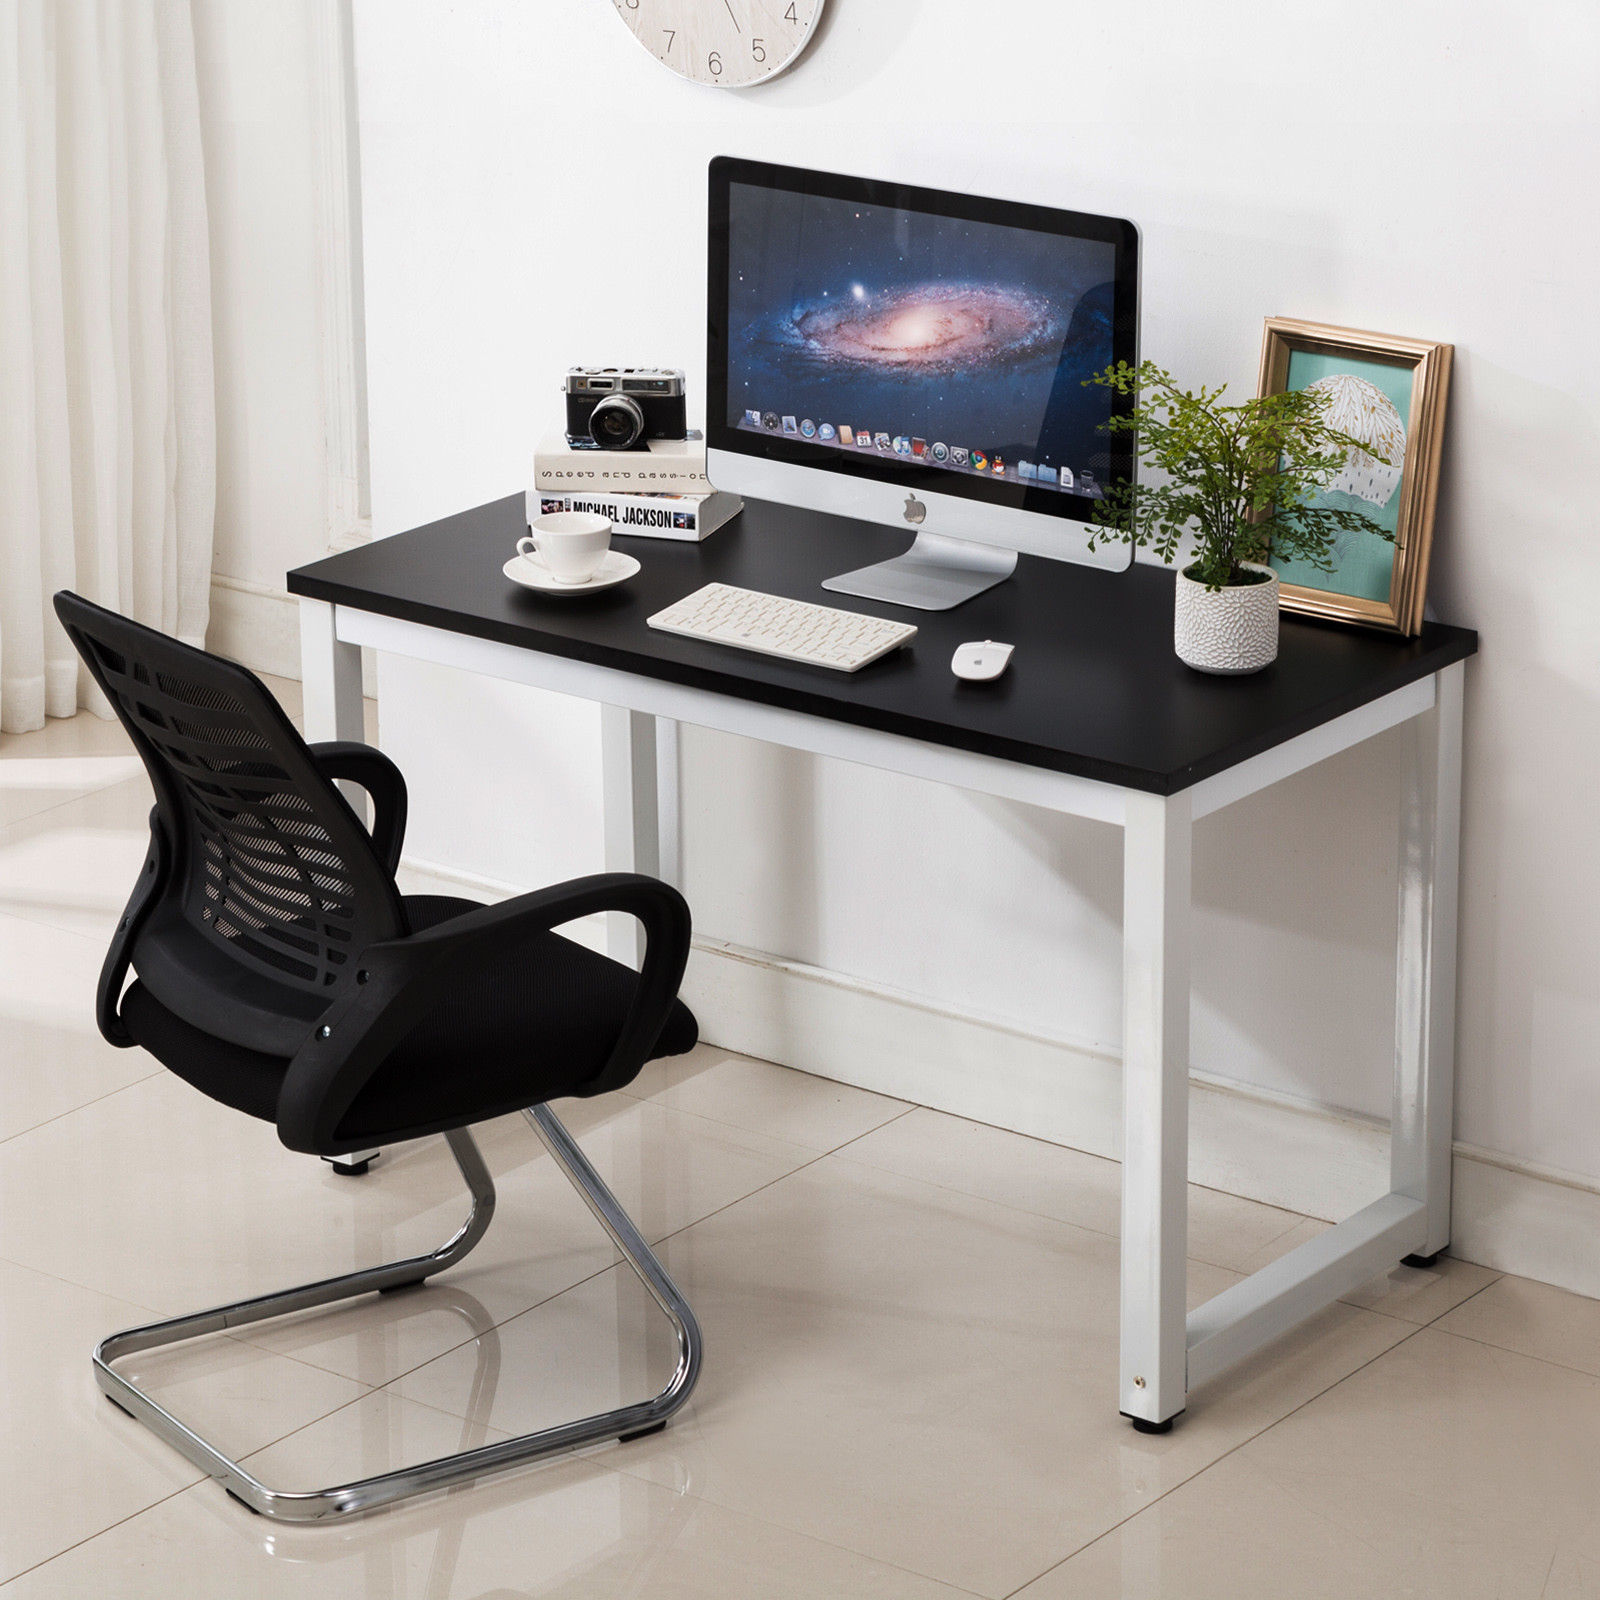 Details About Computer Desk Pc Laptop Table Workstation Writing Table Wood Office Furniture